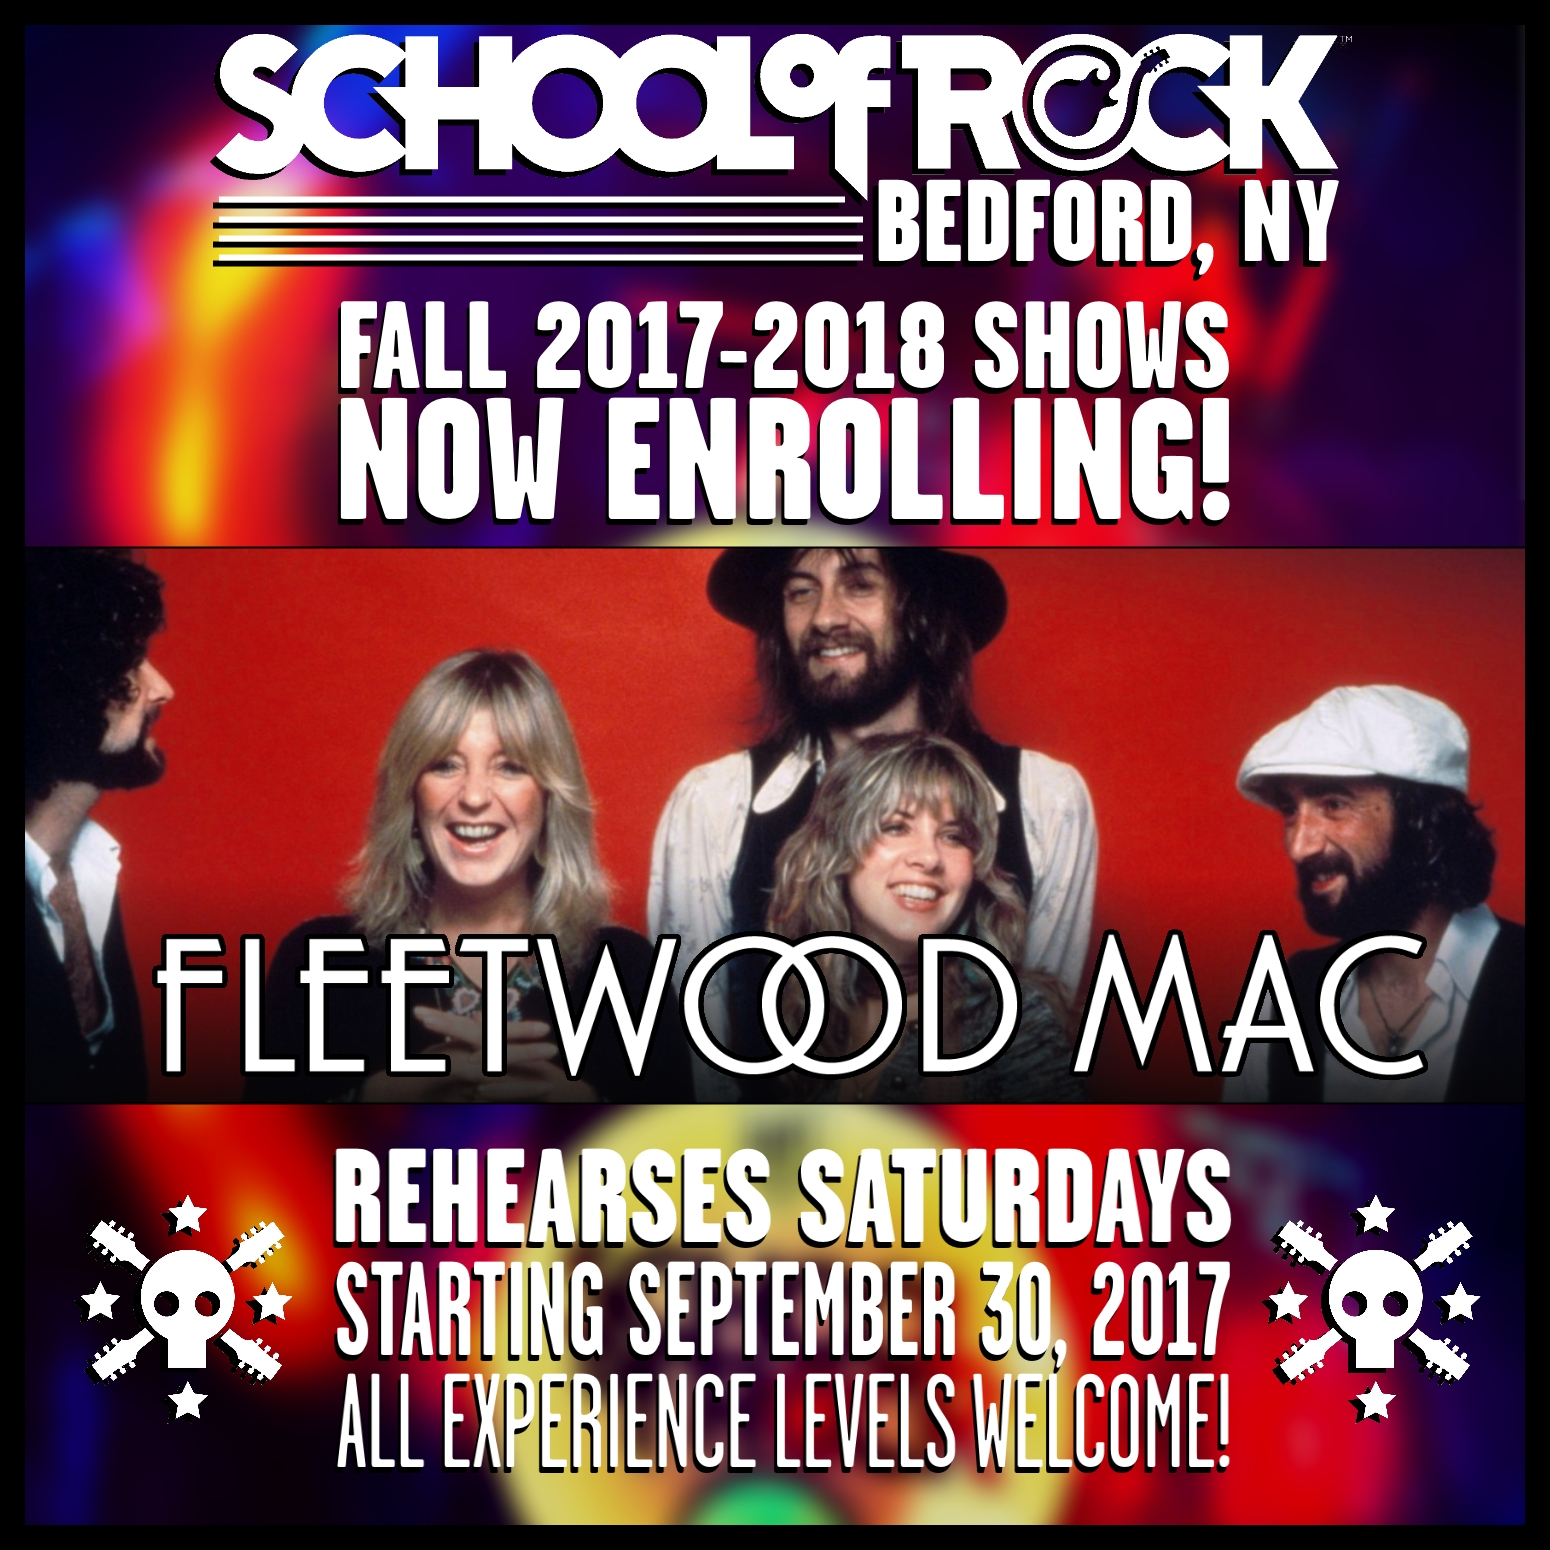 Image of FALL 2017-2018 SHOW #5: FLEETWOOD MAC